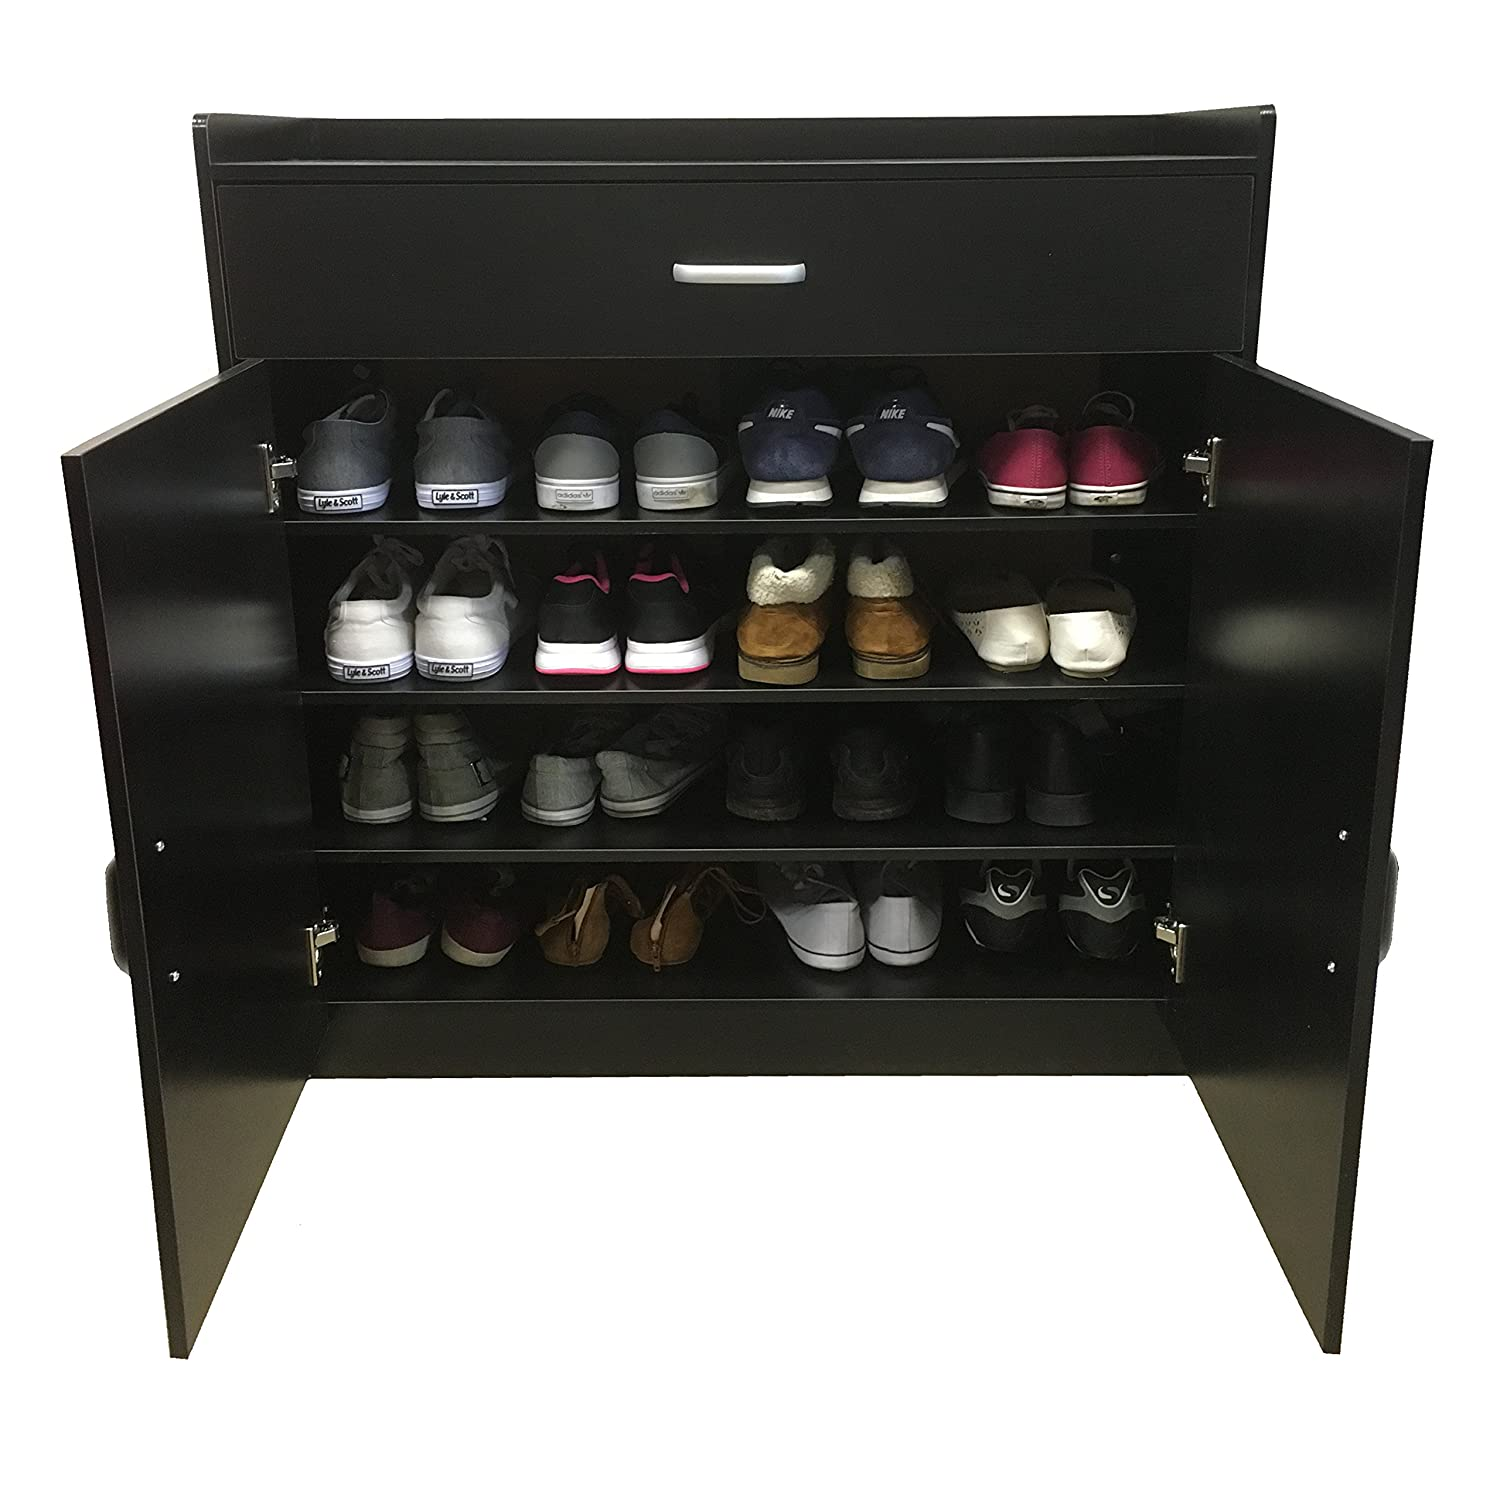 Redstone Black White Or Beech Shoe Storage Cabinet Rack Cupboard   4 Shelves  + 1 Drawer   Wooden Sideboard (Black): Amazon.co.uk: Kitchen U0026 Home